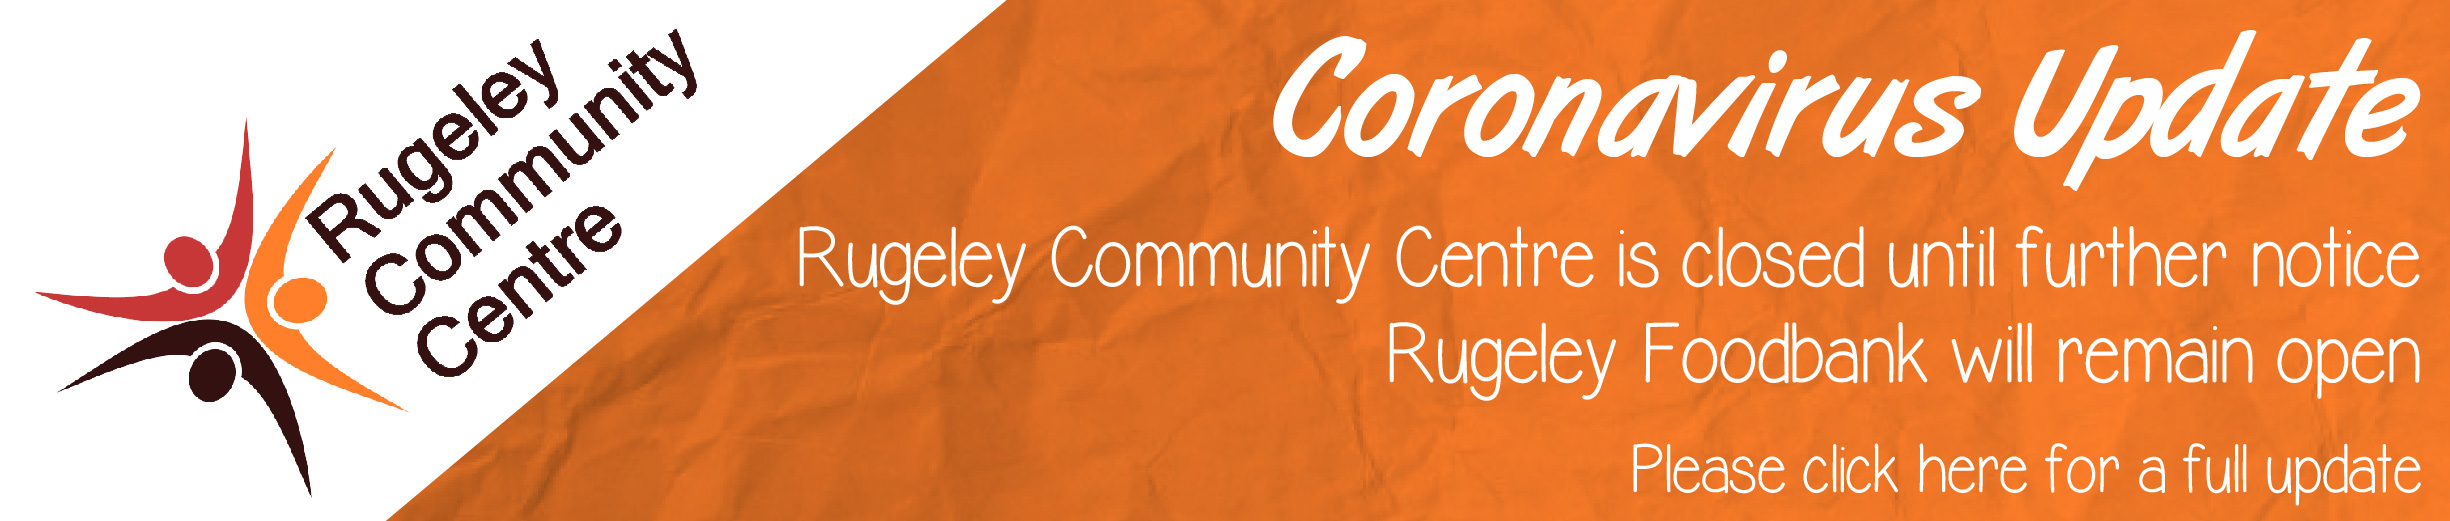 Rugeley Community Church/Centre Coronavirus Update - Click for more information